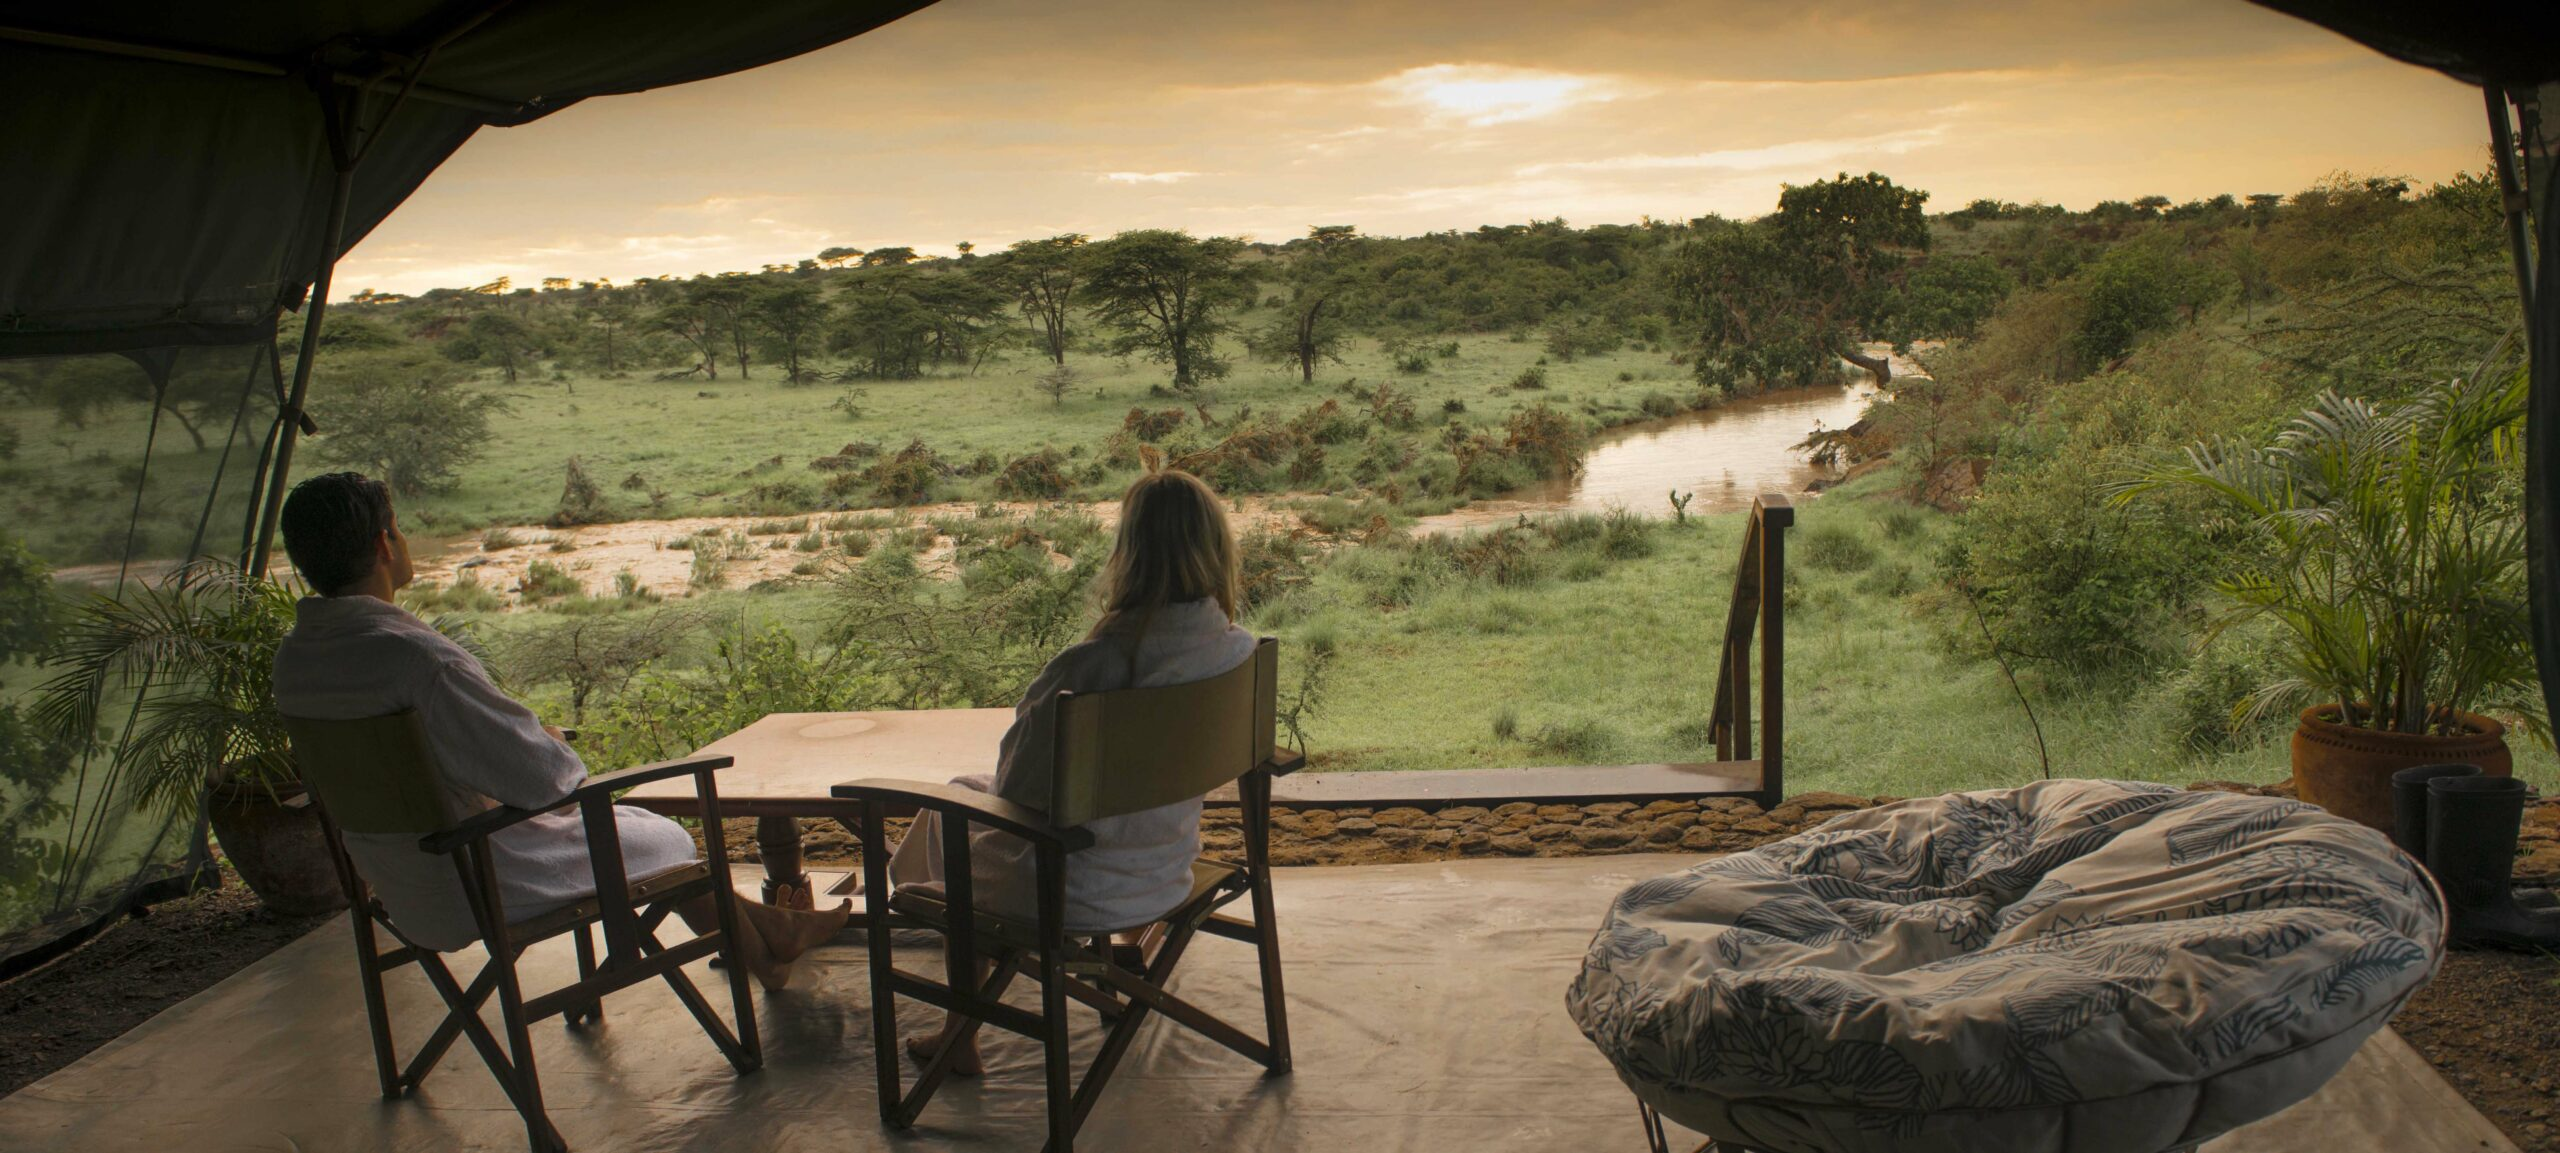 view from the honeymoon suite at Richard's RIver Camp at sundown on a luxury kenya safari